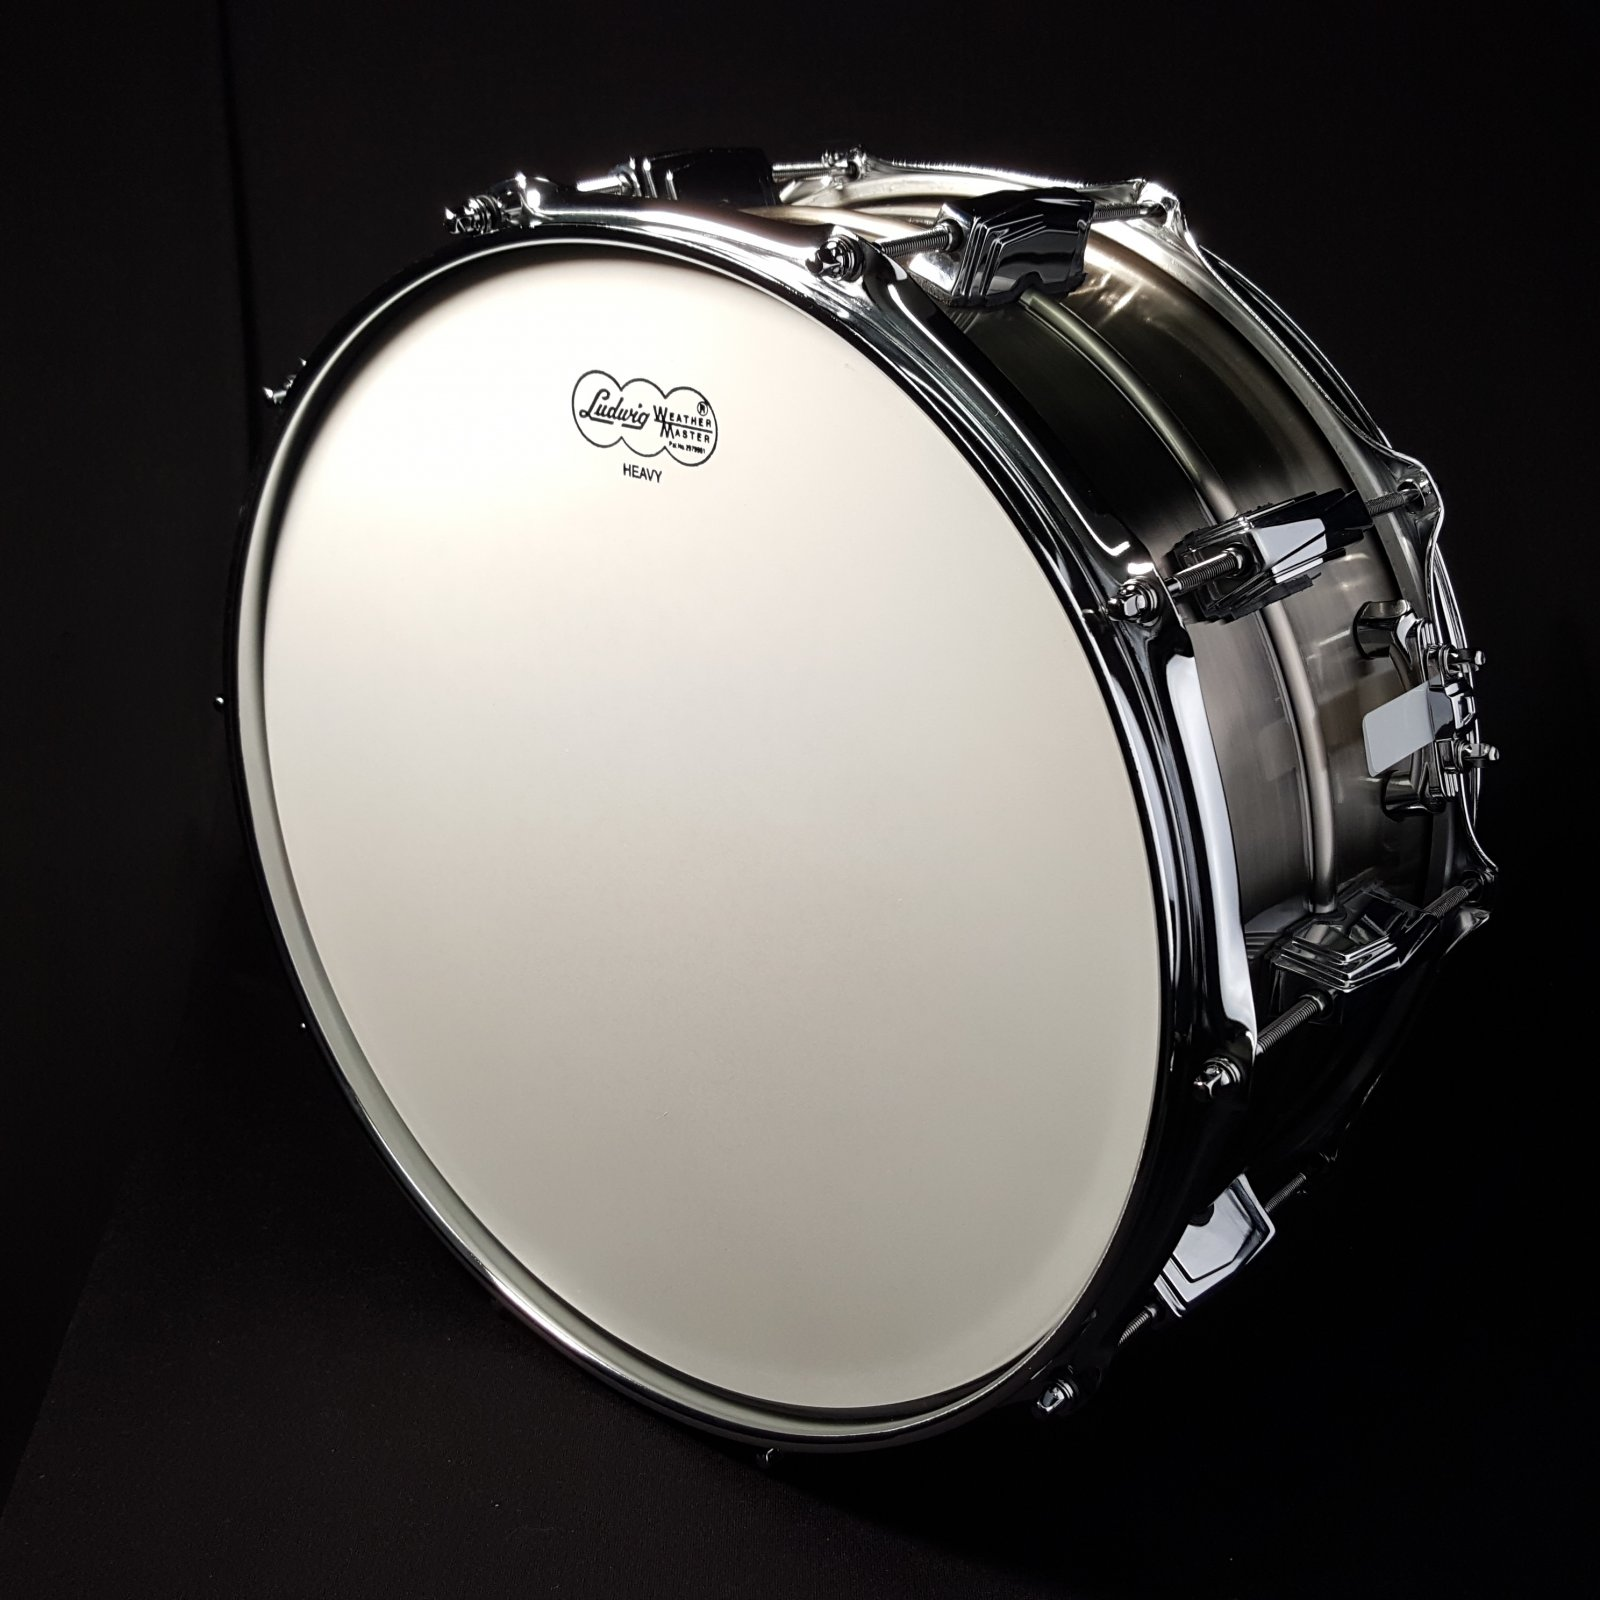 Ludwig LC665 6.5x14 Limited Edition Pewter Copper Phonic 10-Lug Snare Drum